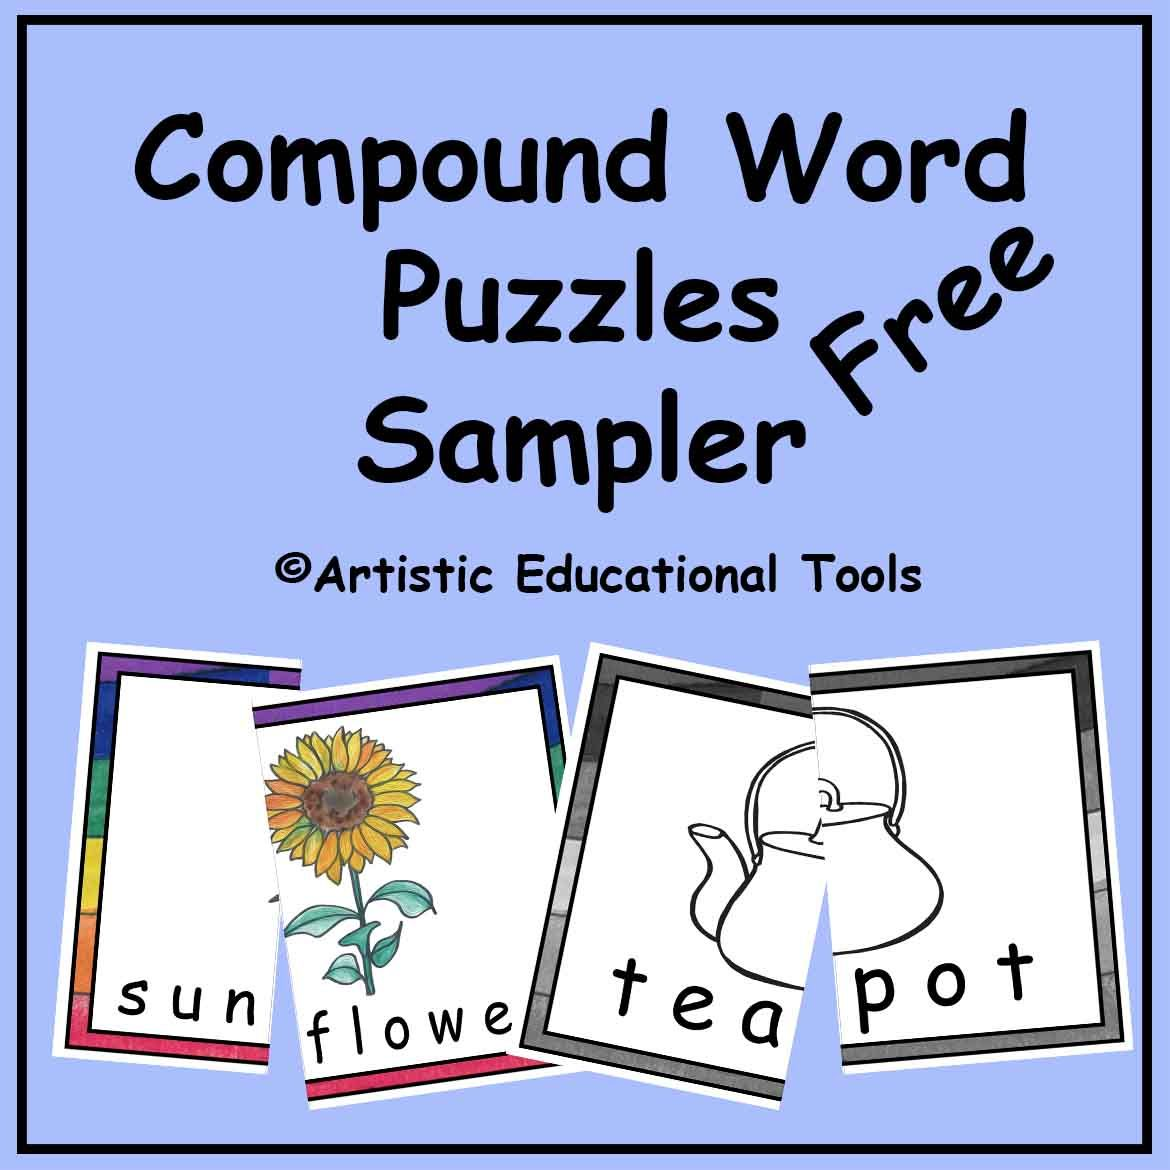 Compound Word Picture Word Puzzles Sampler Includes A